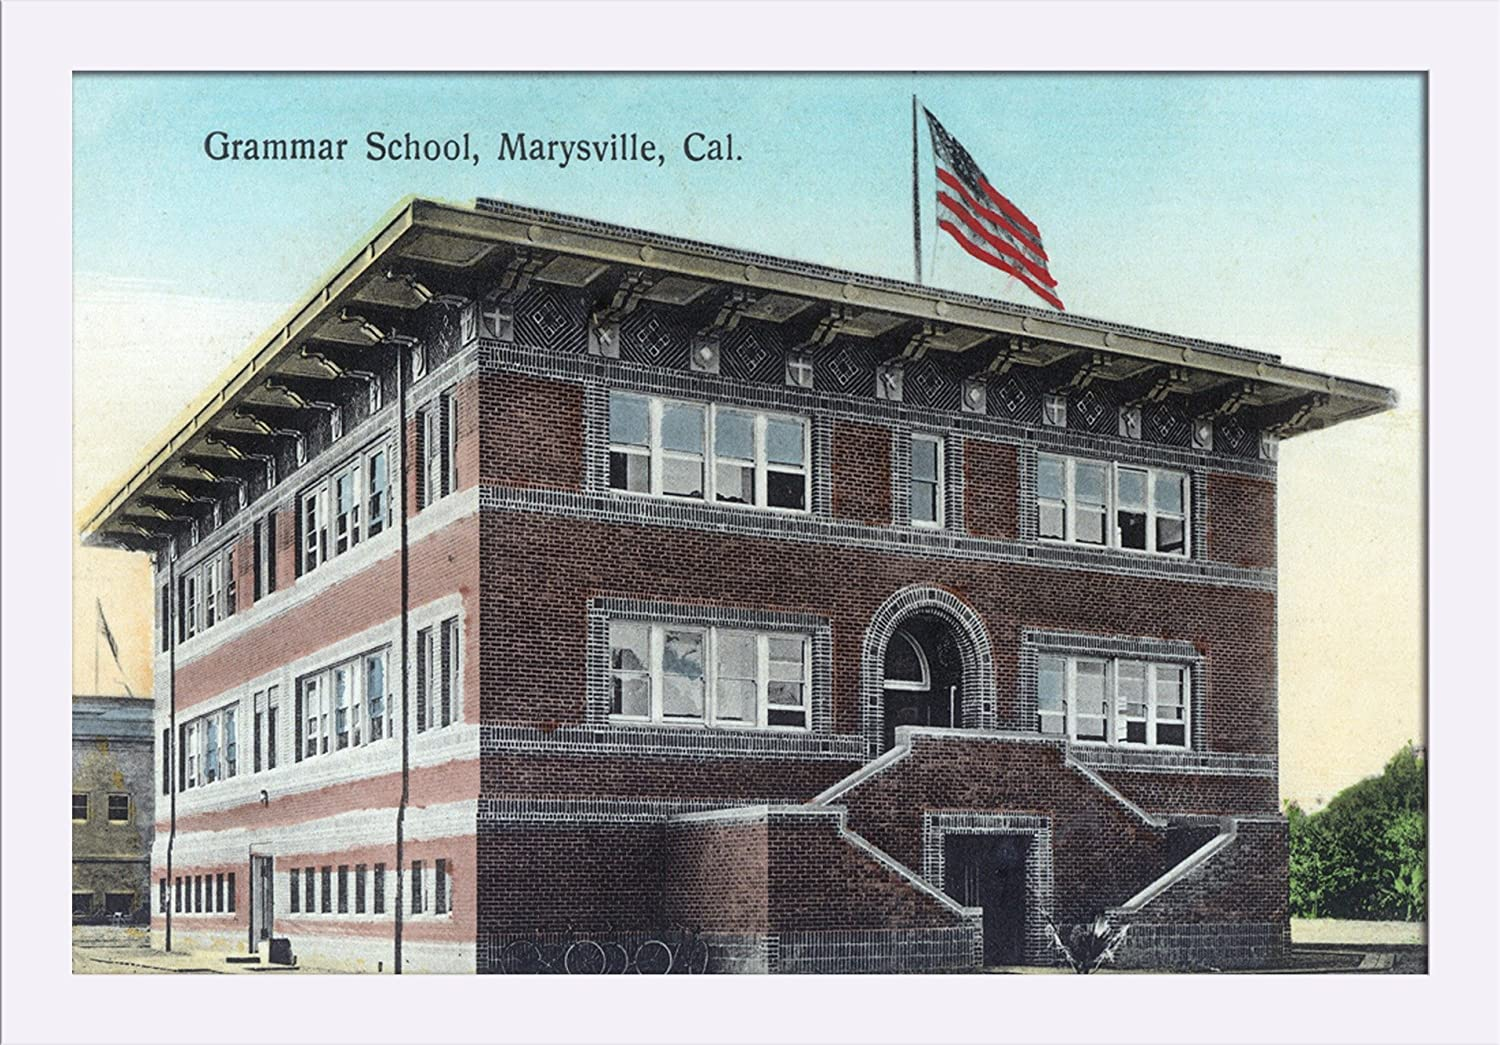 Amazon.com: Marysville, California - Exterior View of the Grammar School (24x15 3/8 Giclee Art Print, Gallery Framed, White Wood): Posters & Prints